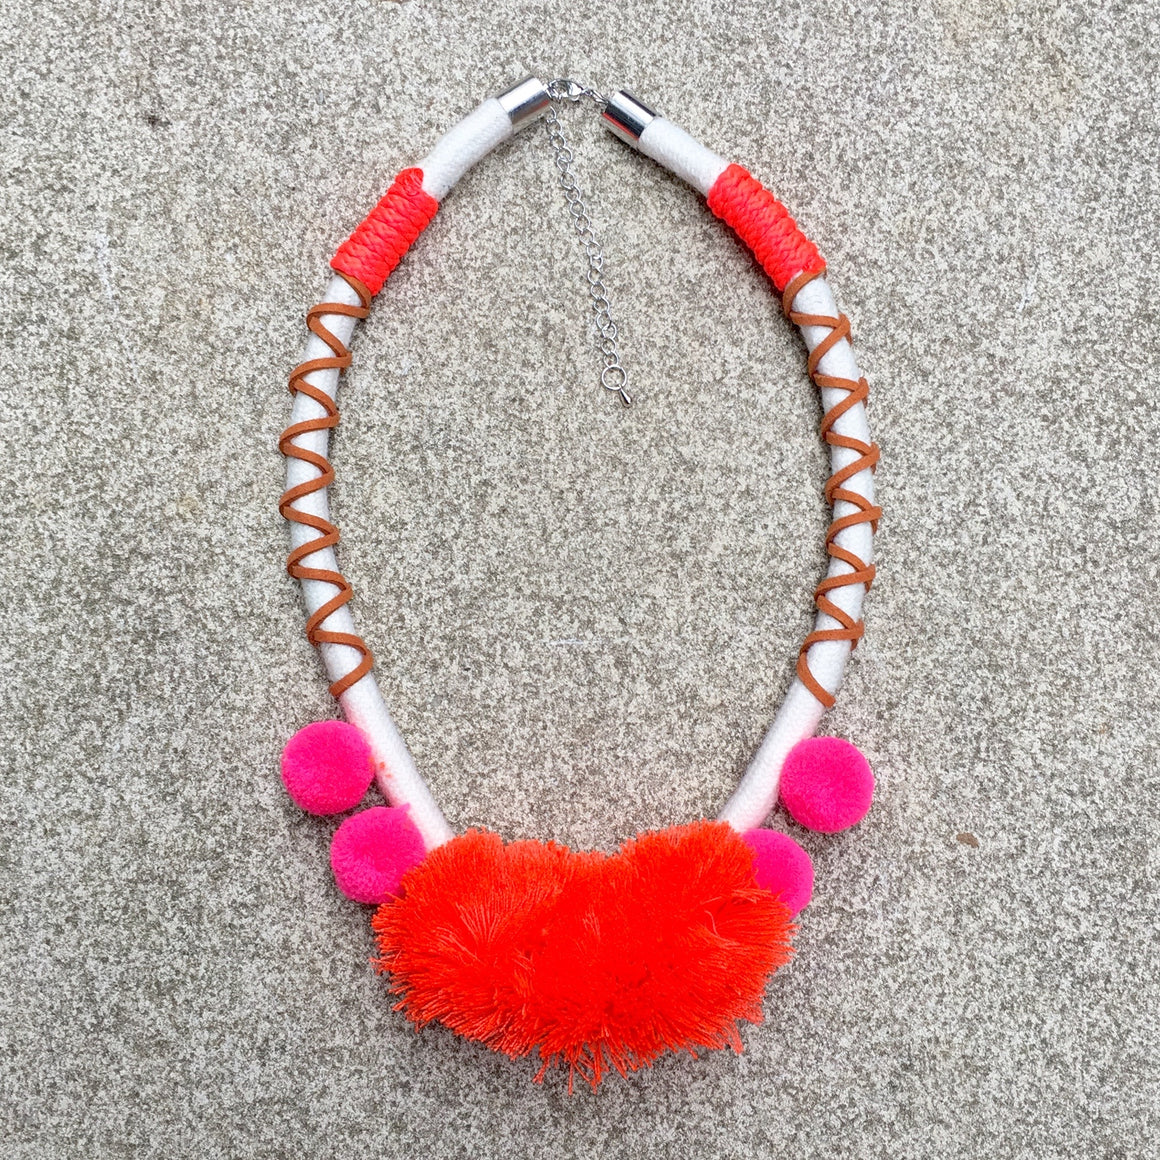 Rope Pom Pom Choker - Orange Pink Tan - KITTY KAT, Necklace